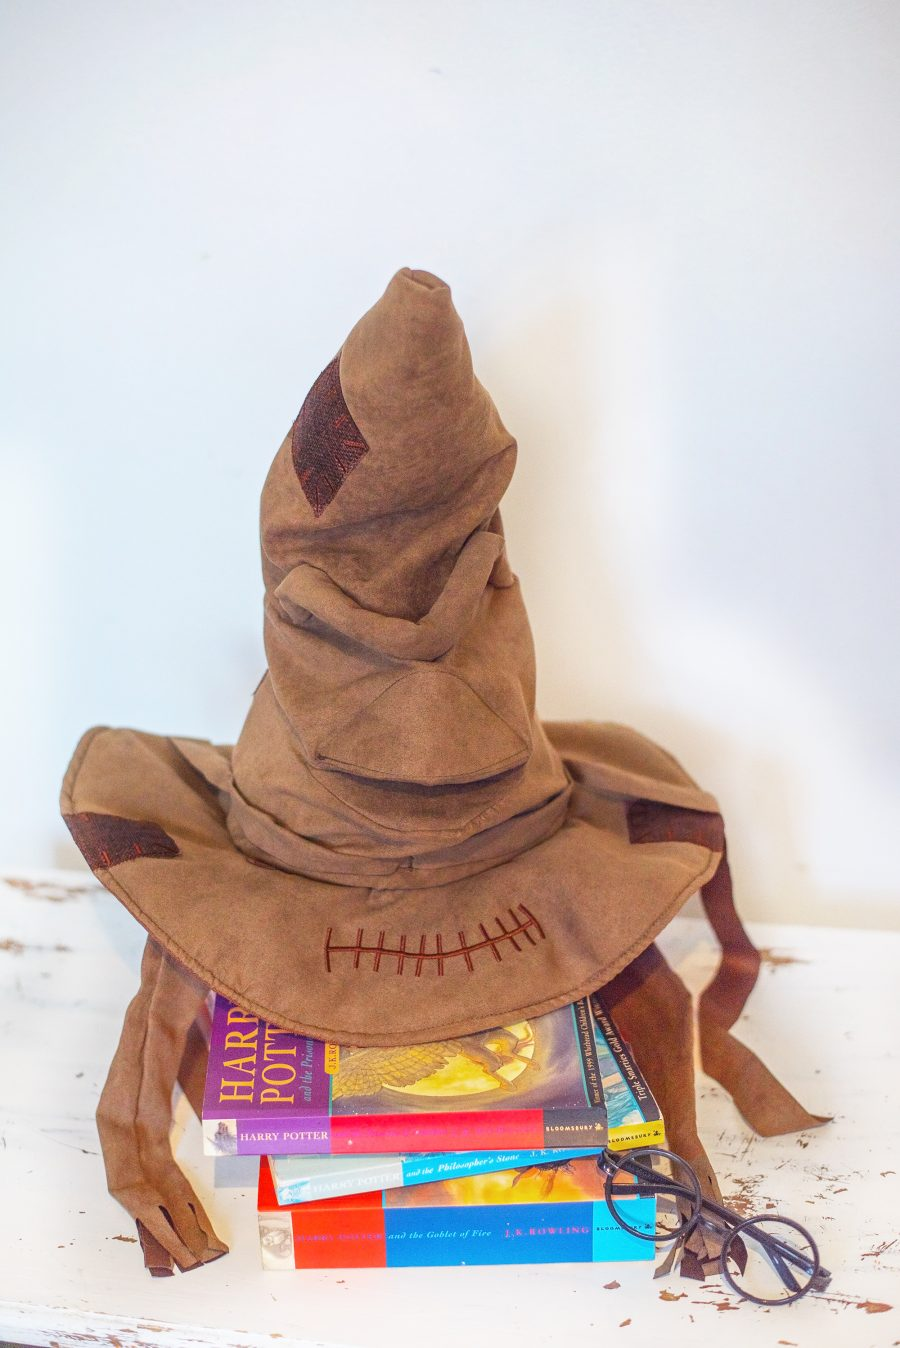 harry potter dumbledore harry potter sorting hat toy